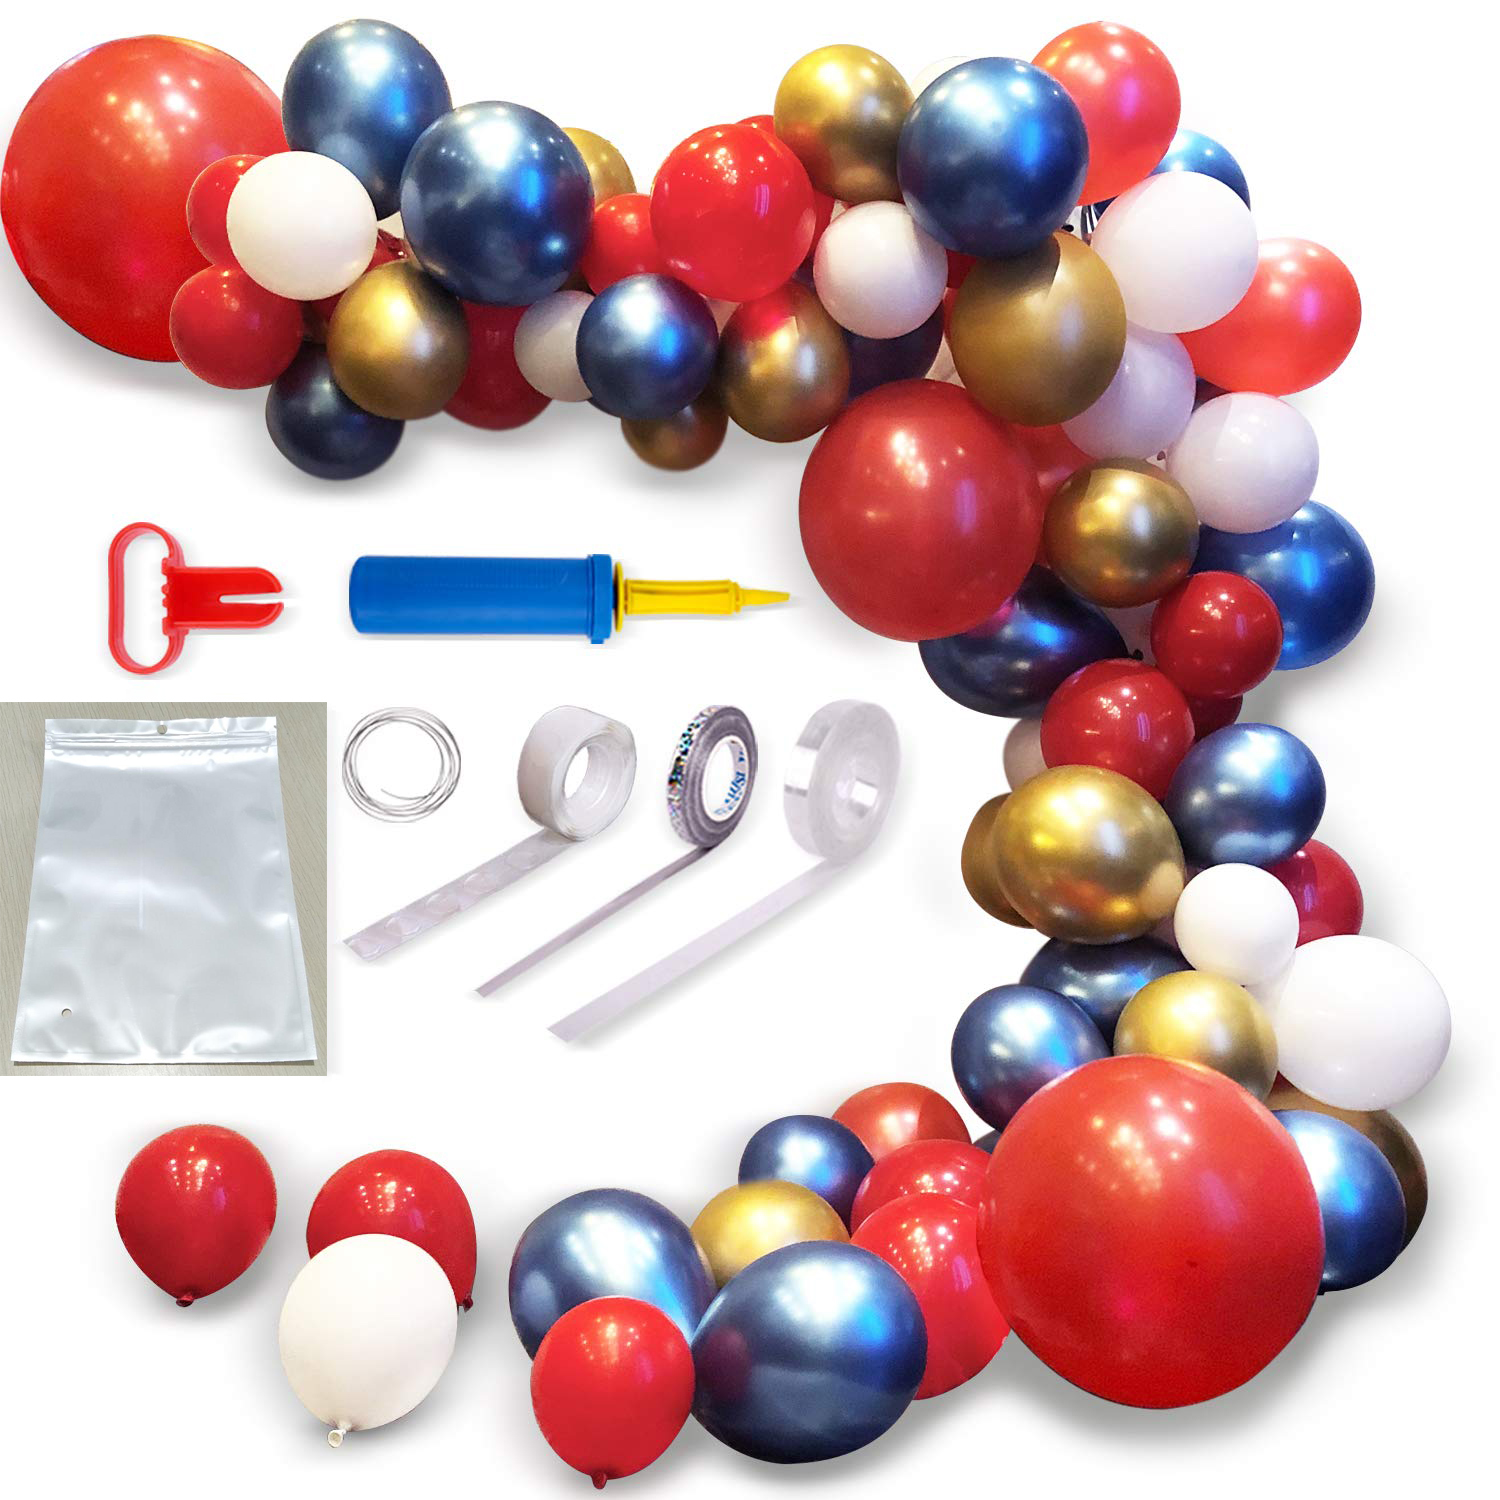 Garland Latex Balloon Arch Ganland Kit 82 Pieces Red Gold Blue Balloons For Baby Showers Weddings Graduations Events Buy 12inch Latex Balloon Arch Bridge Kit Christmas Party Decorations Burgundy Gray Balloons